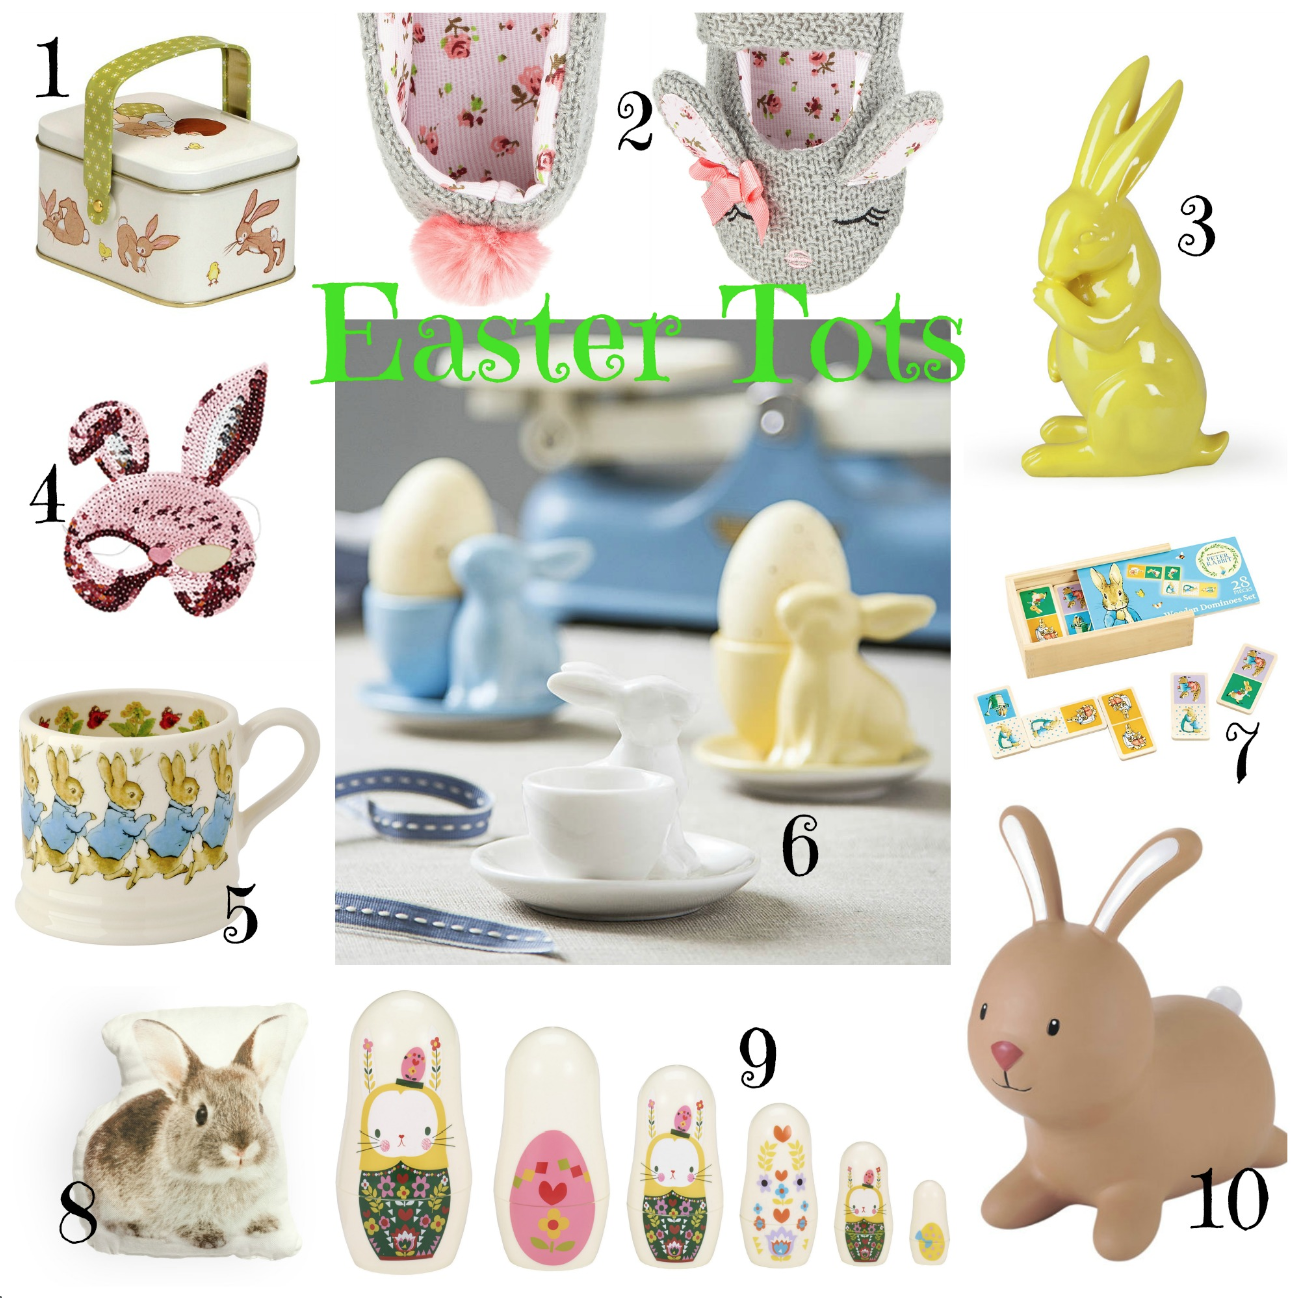 newborn easter photo ideas - 10 Easter ts for toddlers and NOT a single chocolate in